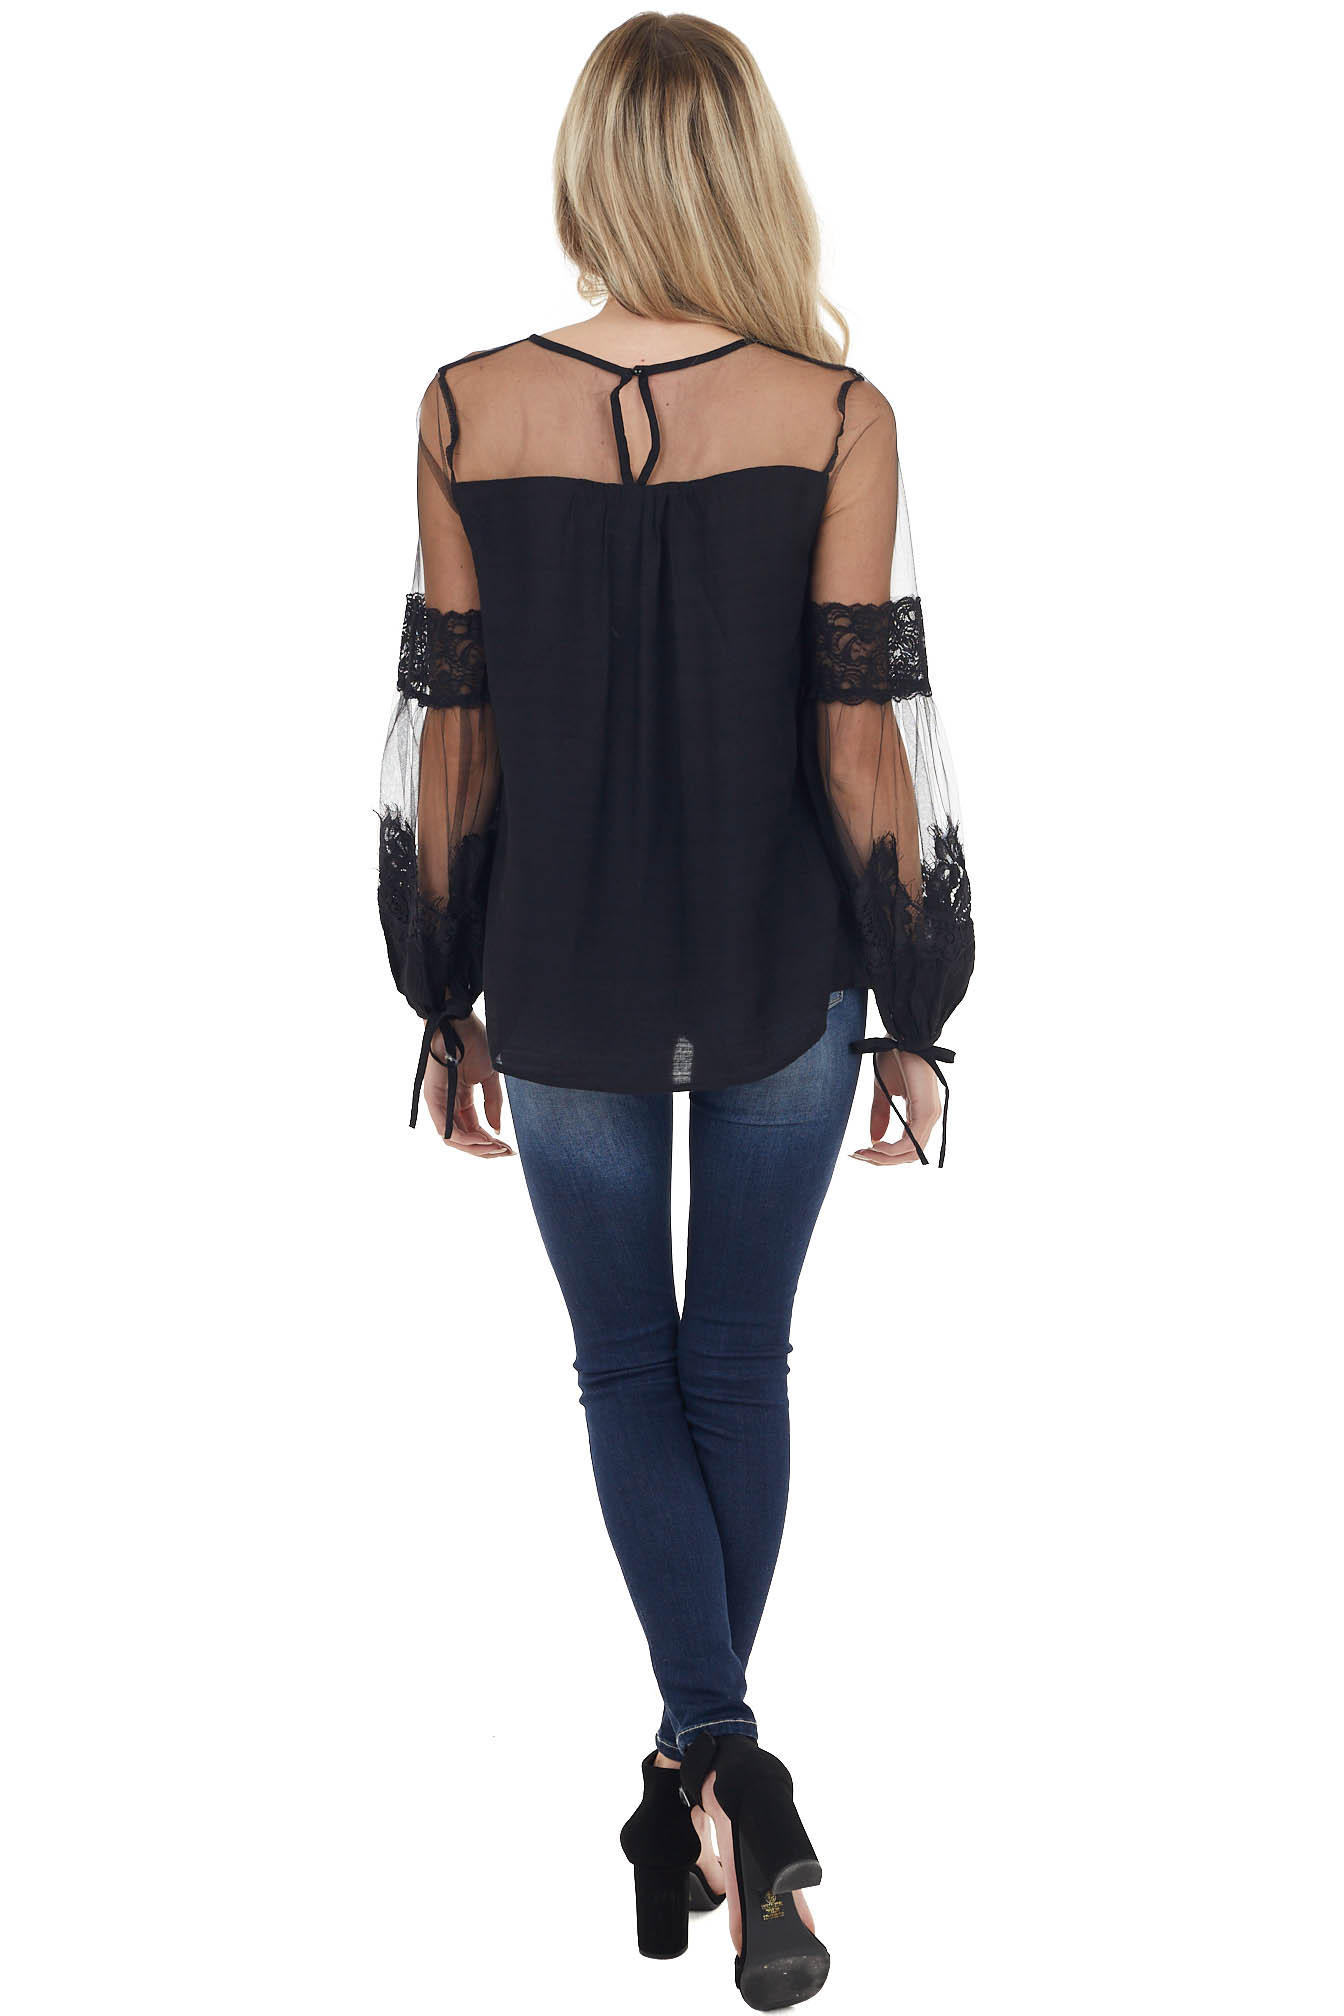 Black Blouse with Long Sheer Sleeves and Lace Details